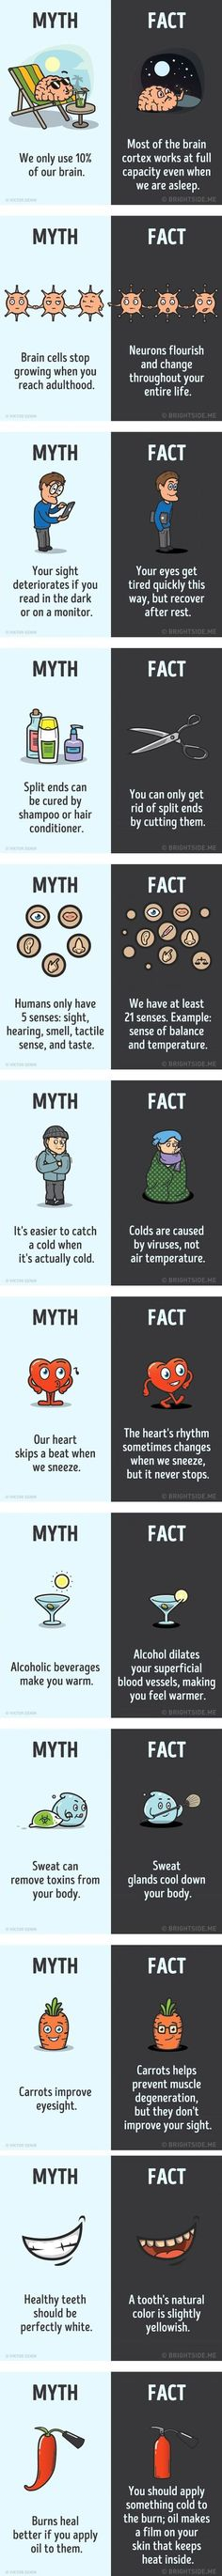 Science myths and facts about the human body